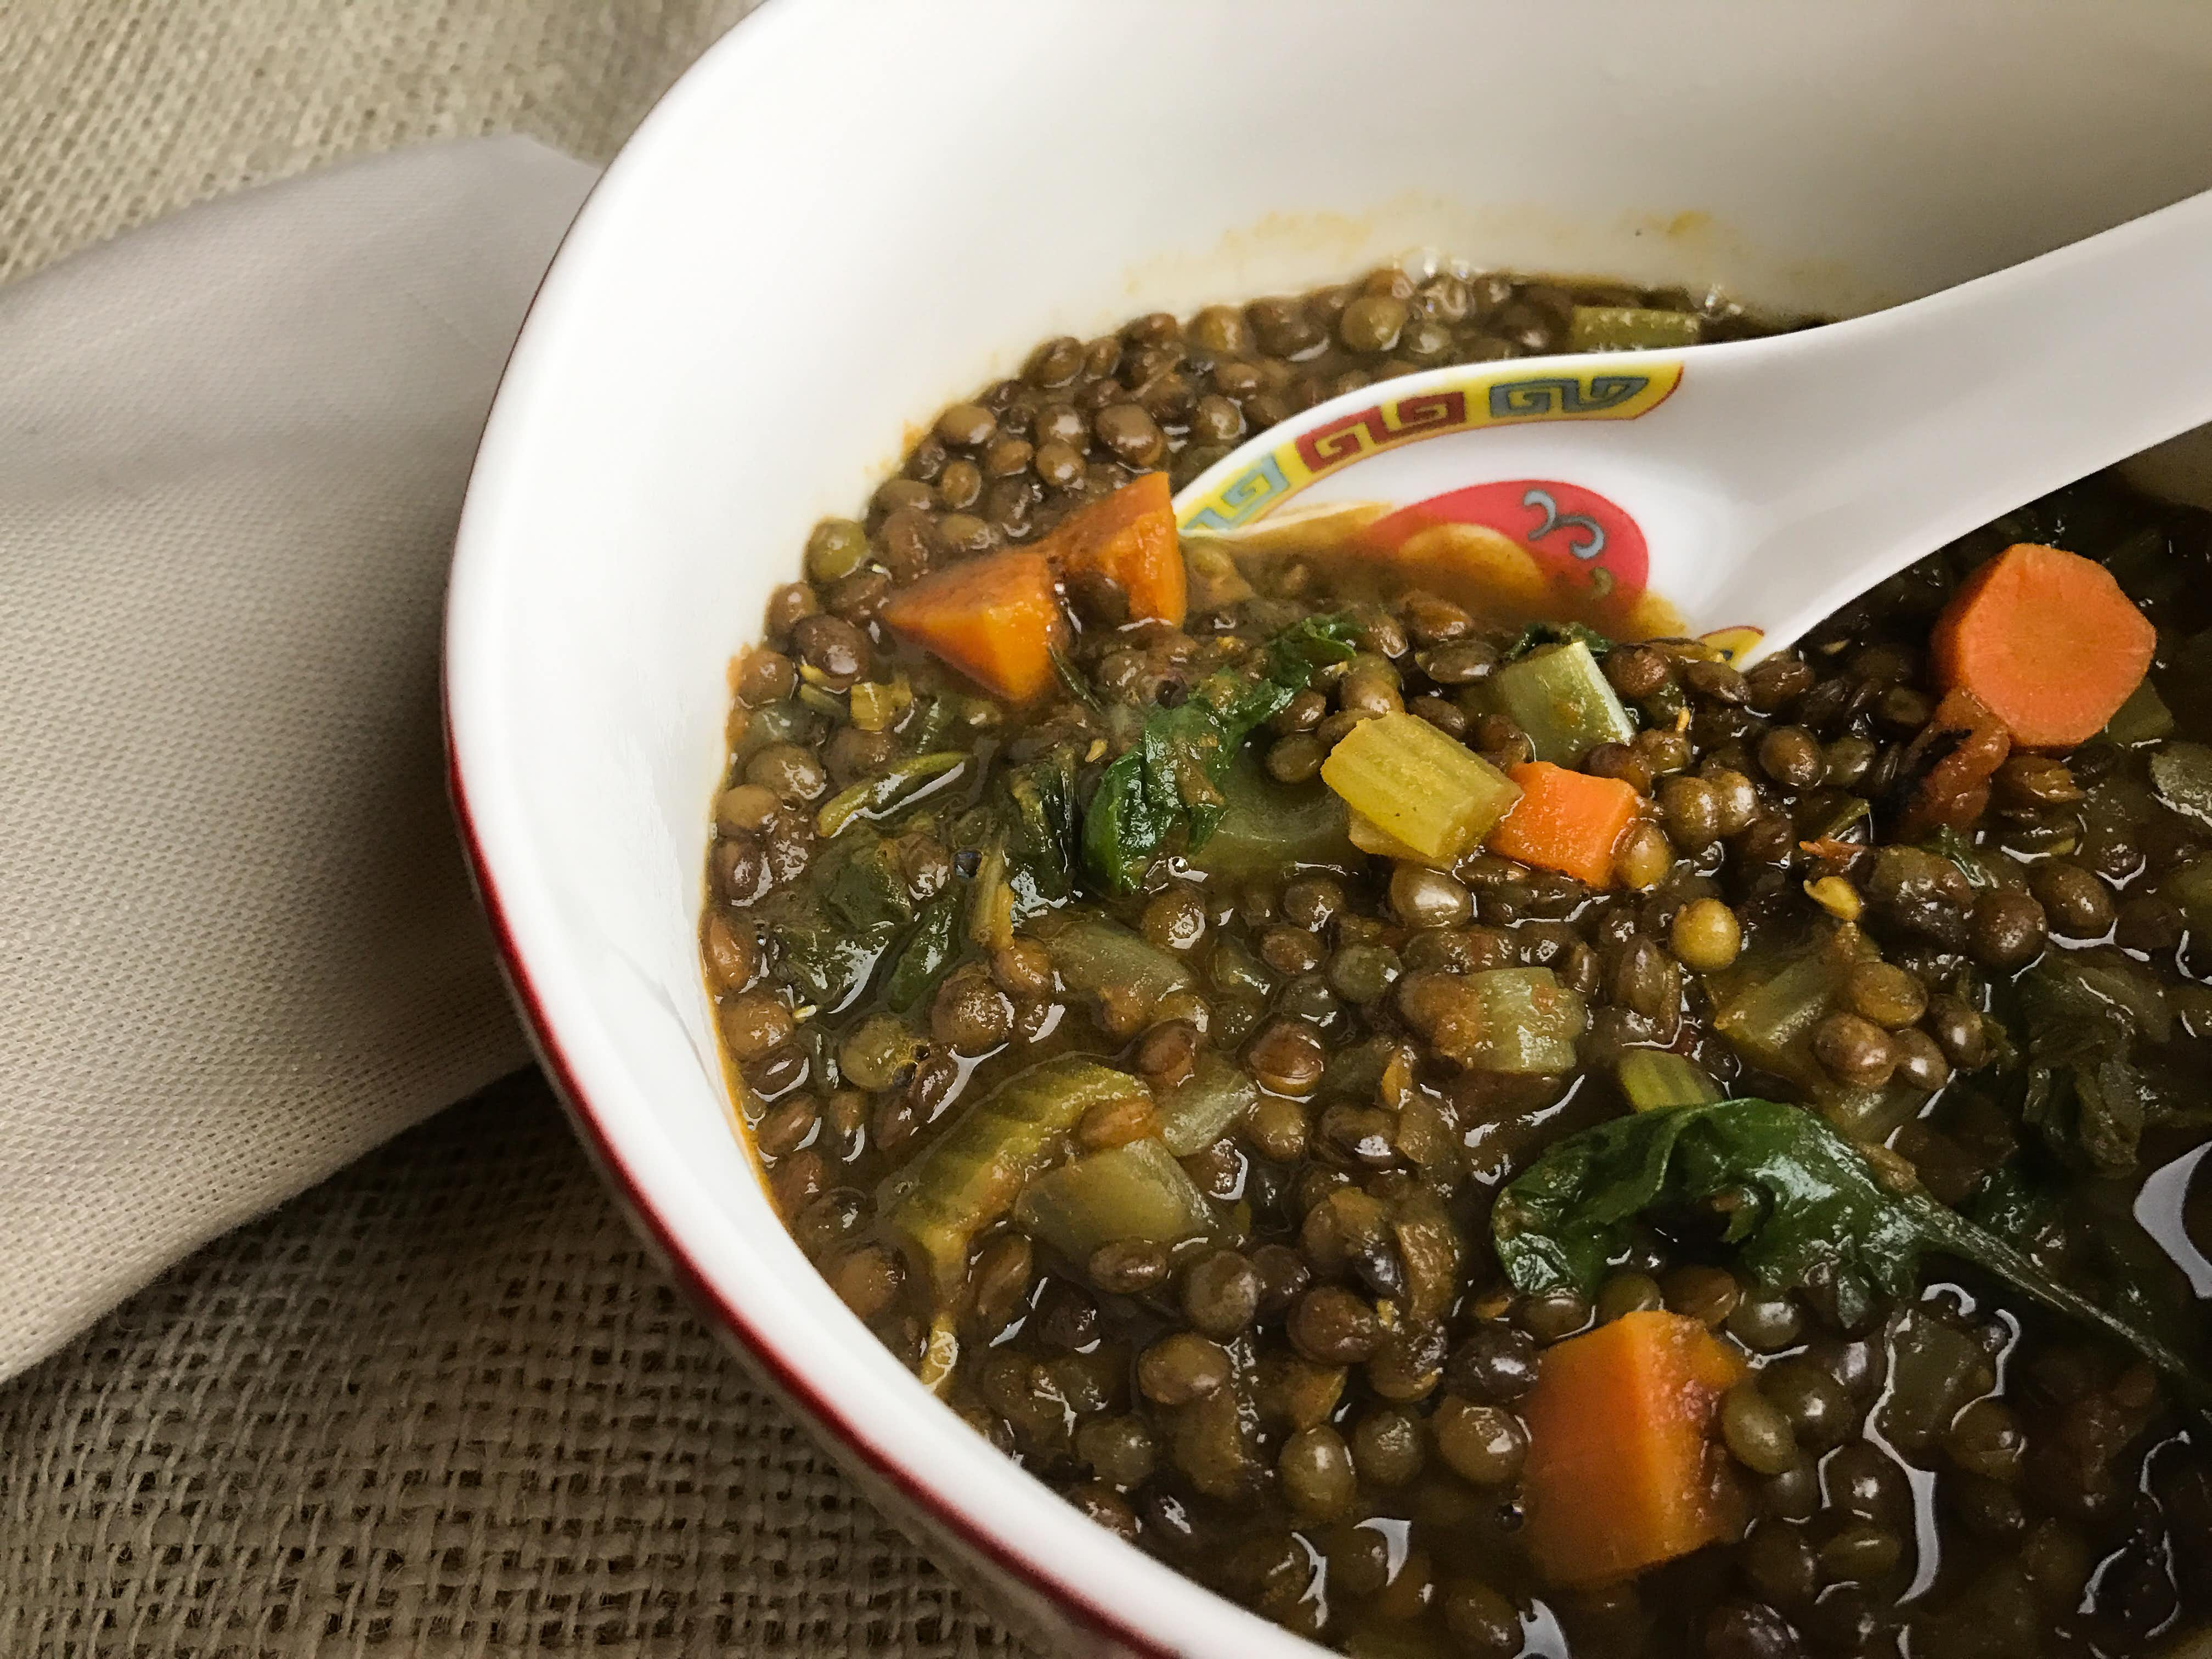 Post-holiday blahs? Make this easy, soulful super-detox lentil soup